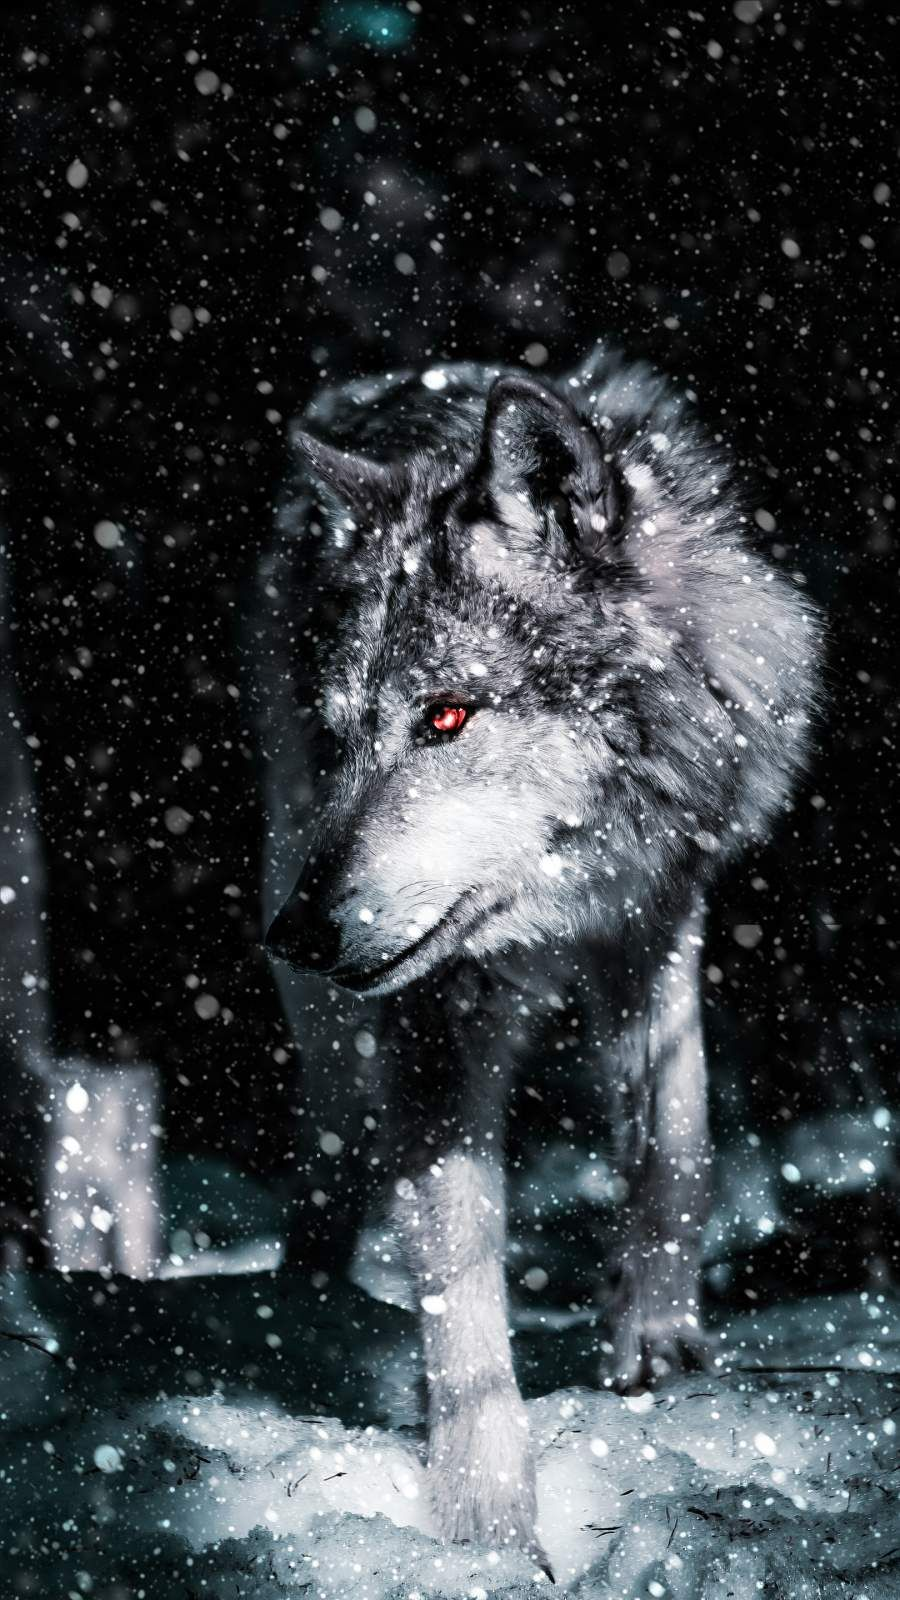 Alpha Wolf iPhone Wallpaper in 2020 Cool wallpapers for